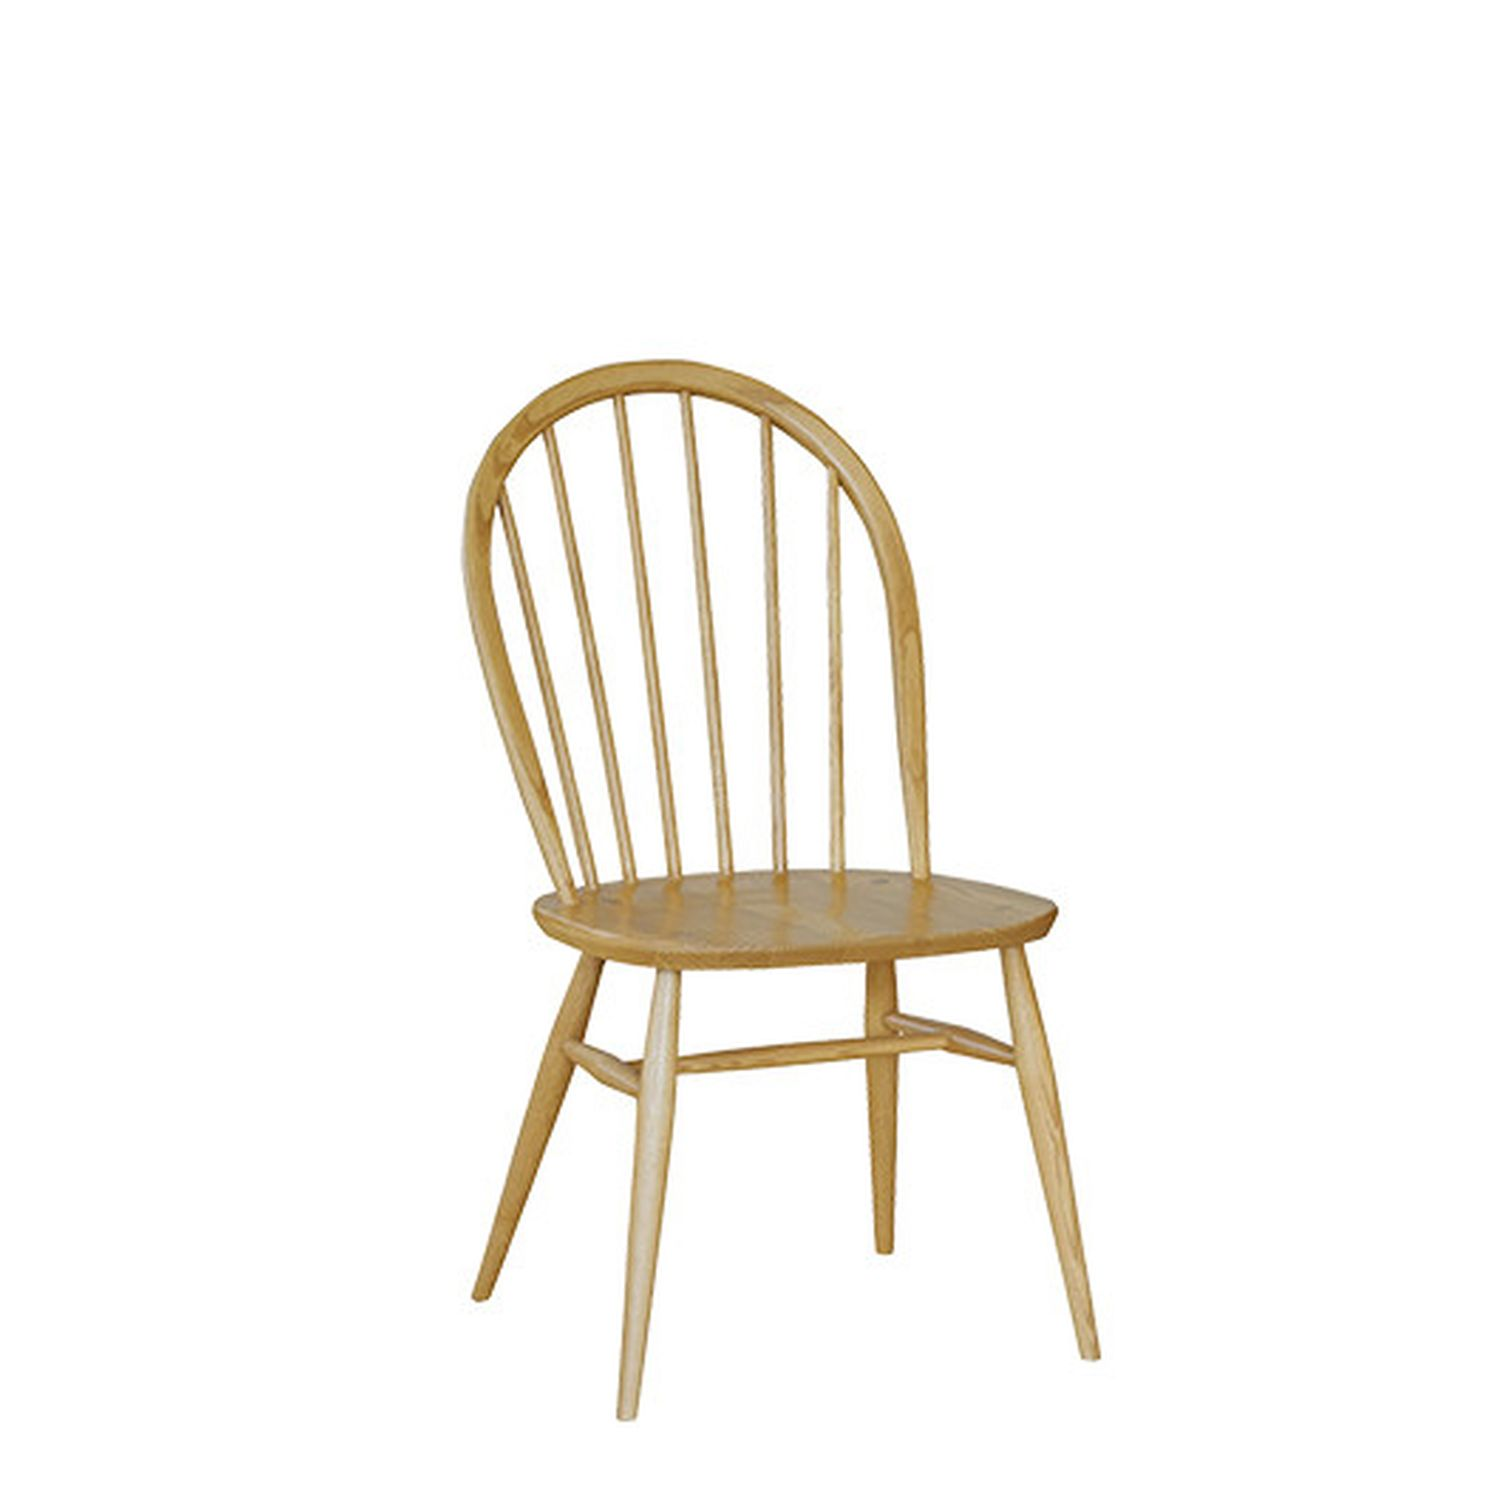 Image of Ercol Windsor Dining Chair